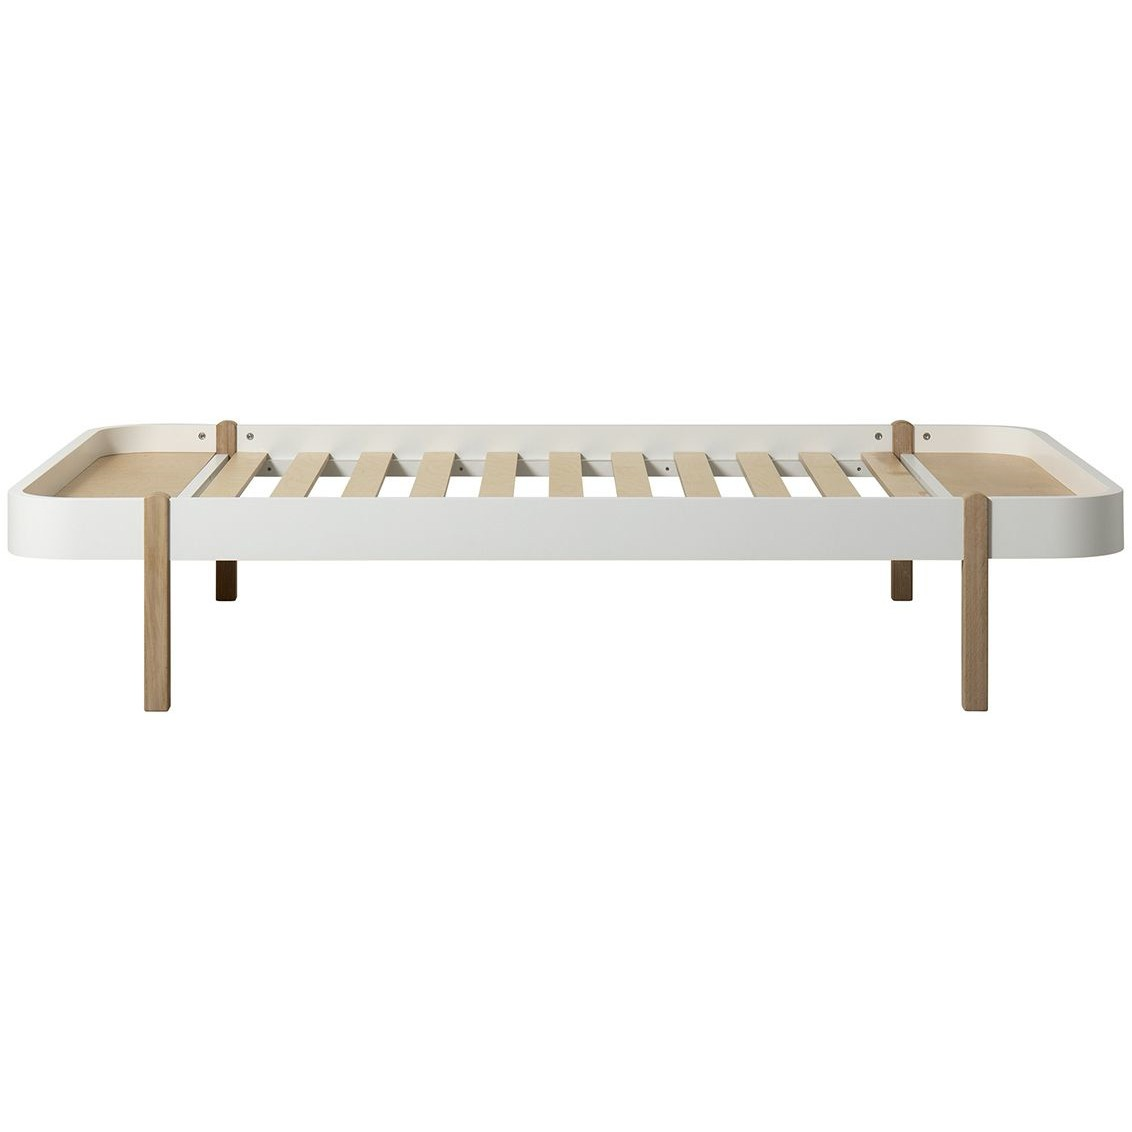 Wood Lounger Eiche 120x200 Cm Oliver Furniture